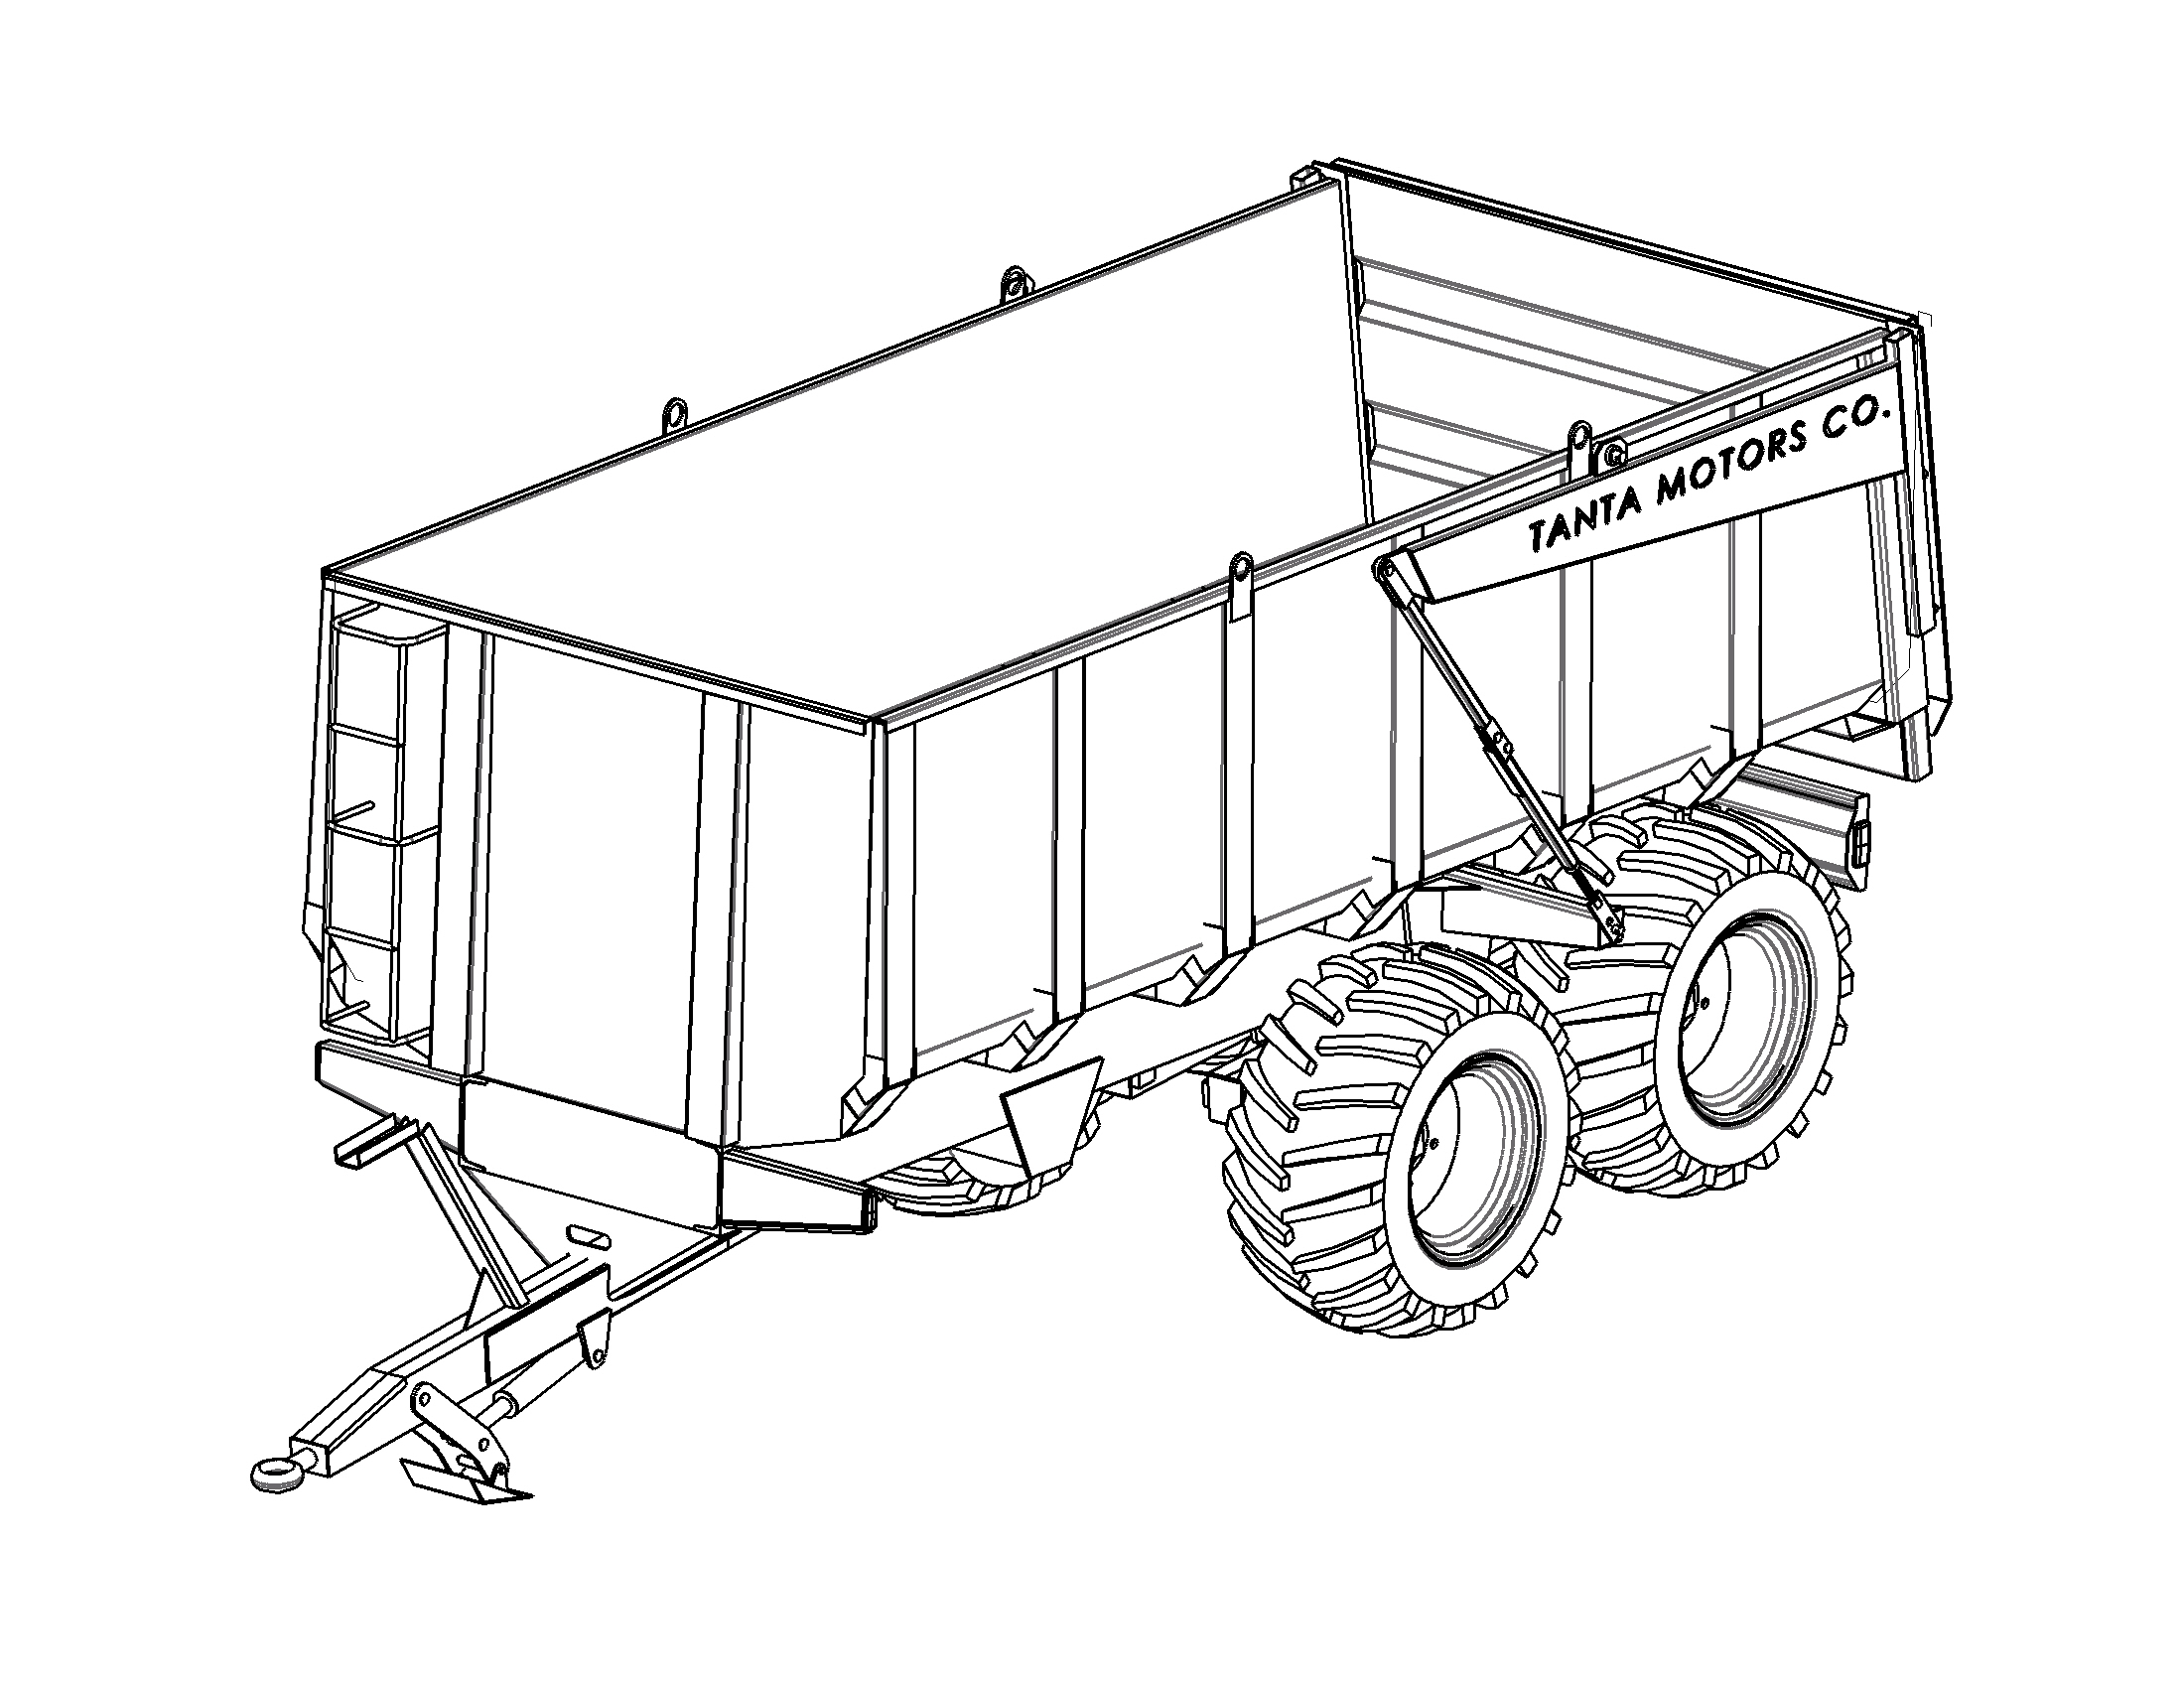 trailer drawing at getdrawings com